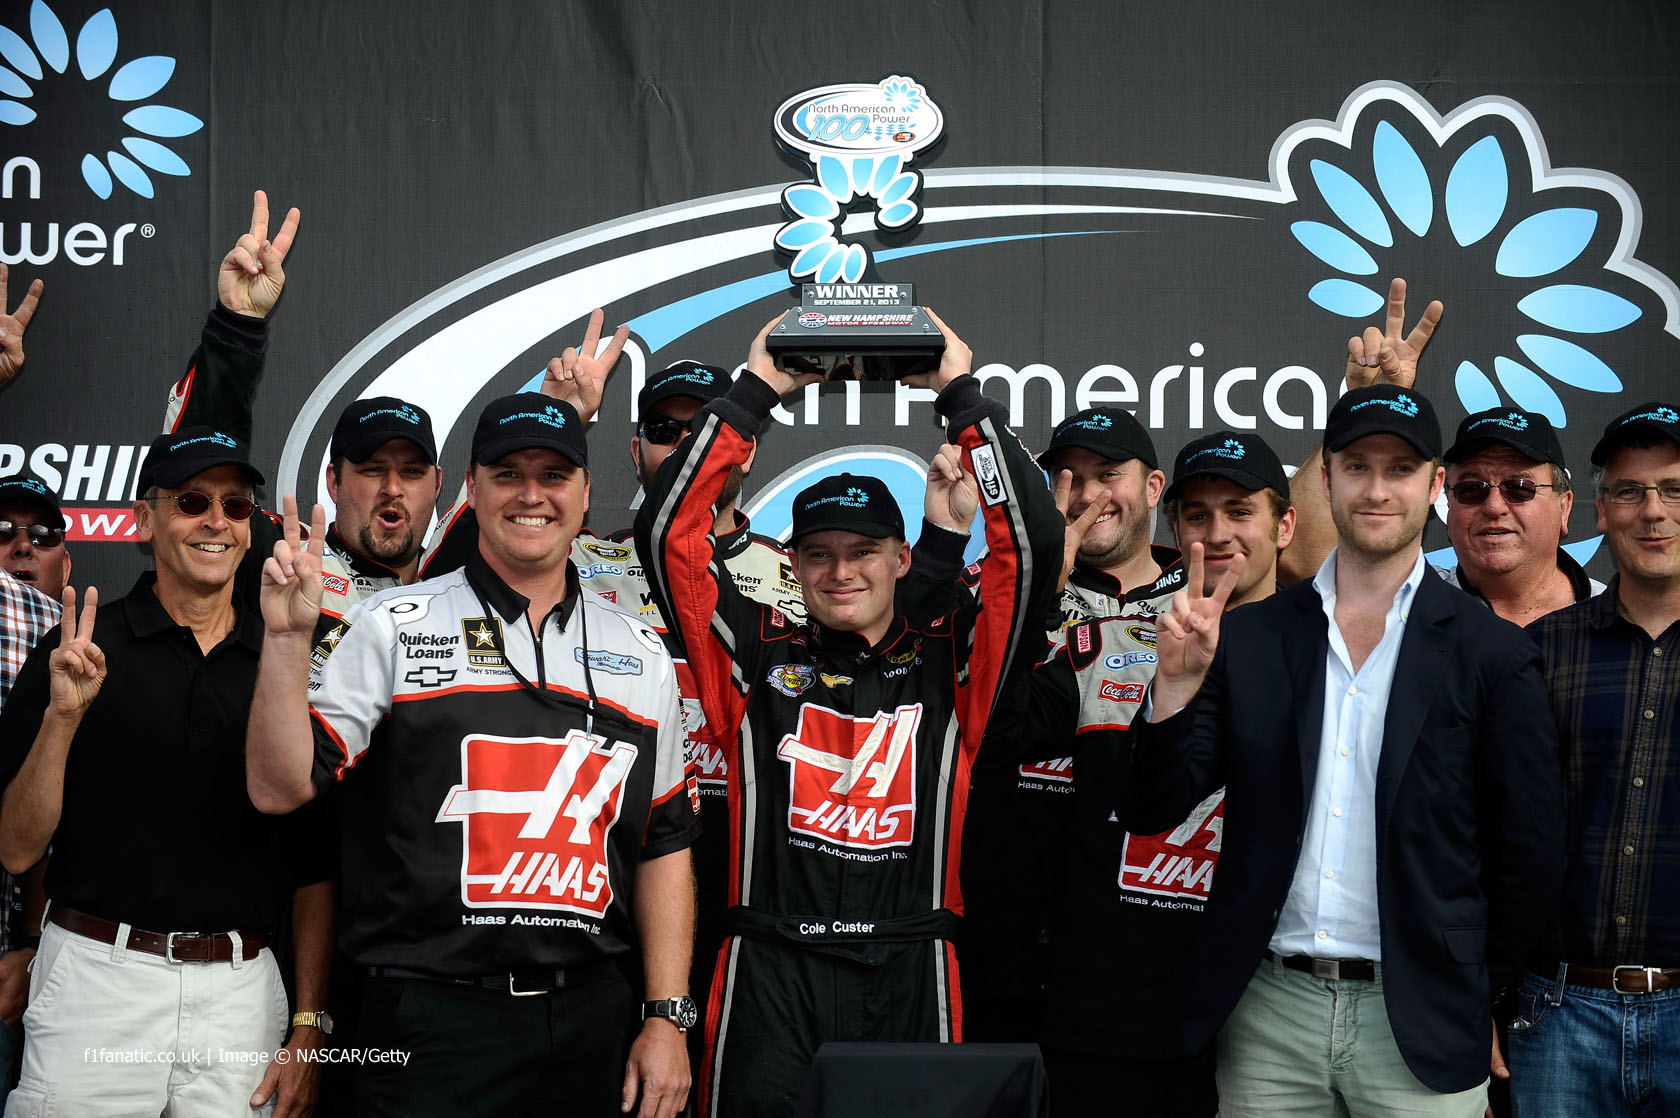 Cole Custer, Haas Automation, New Hampshire, 2013